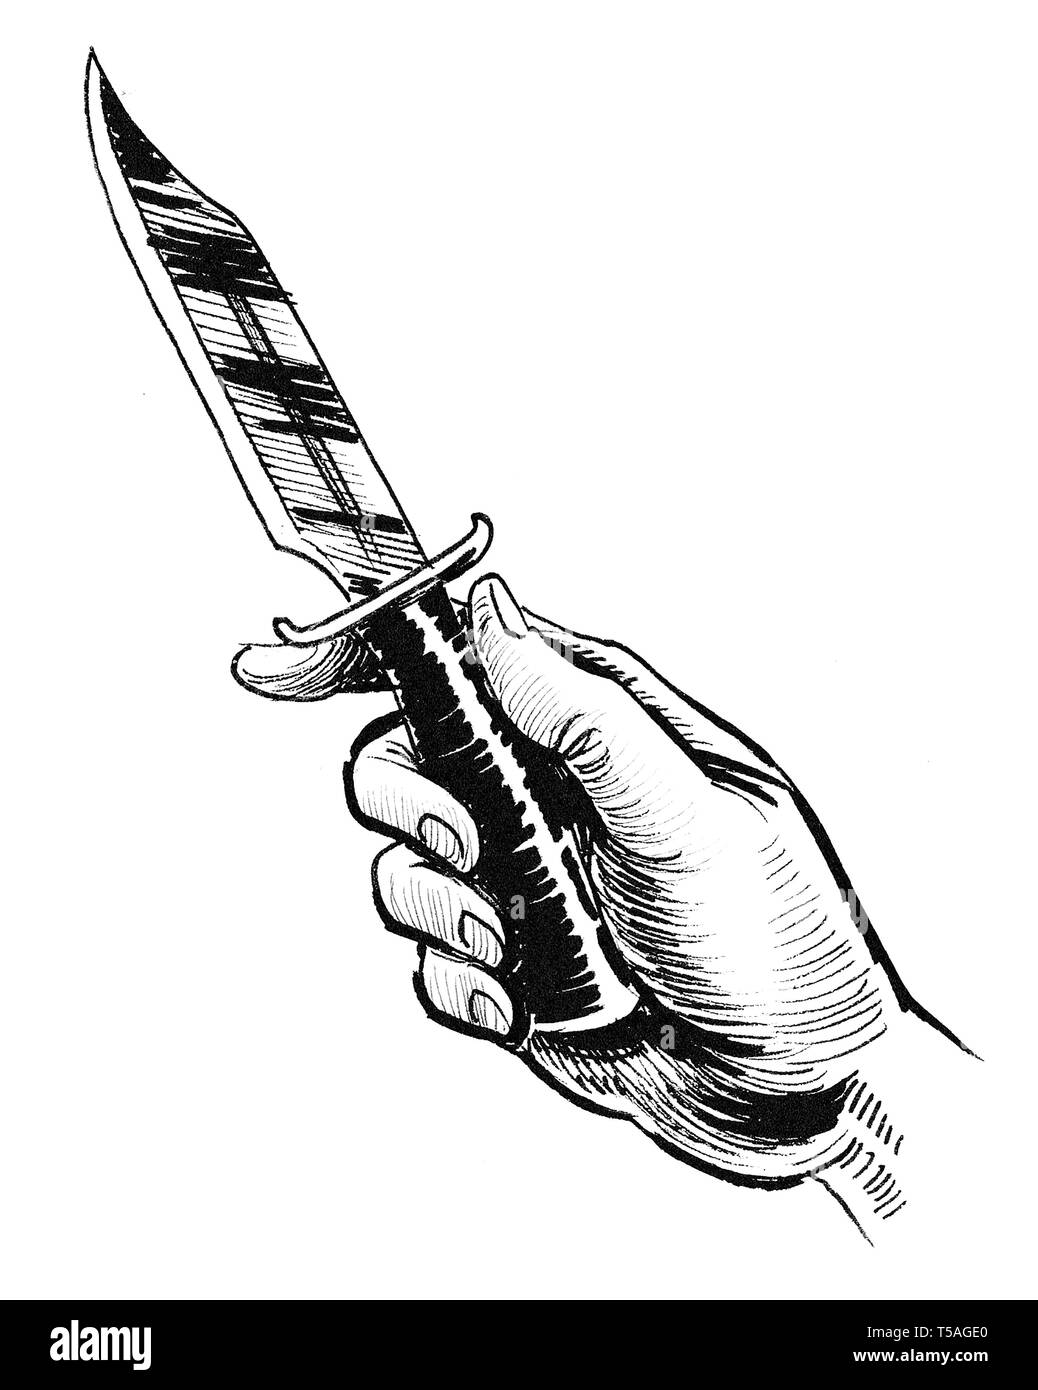 Hand holding a knife. Ink black and white drawing Stock Photo